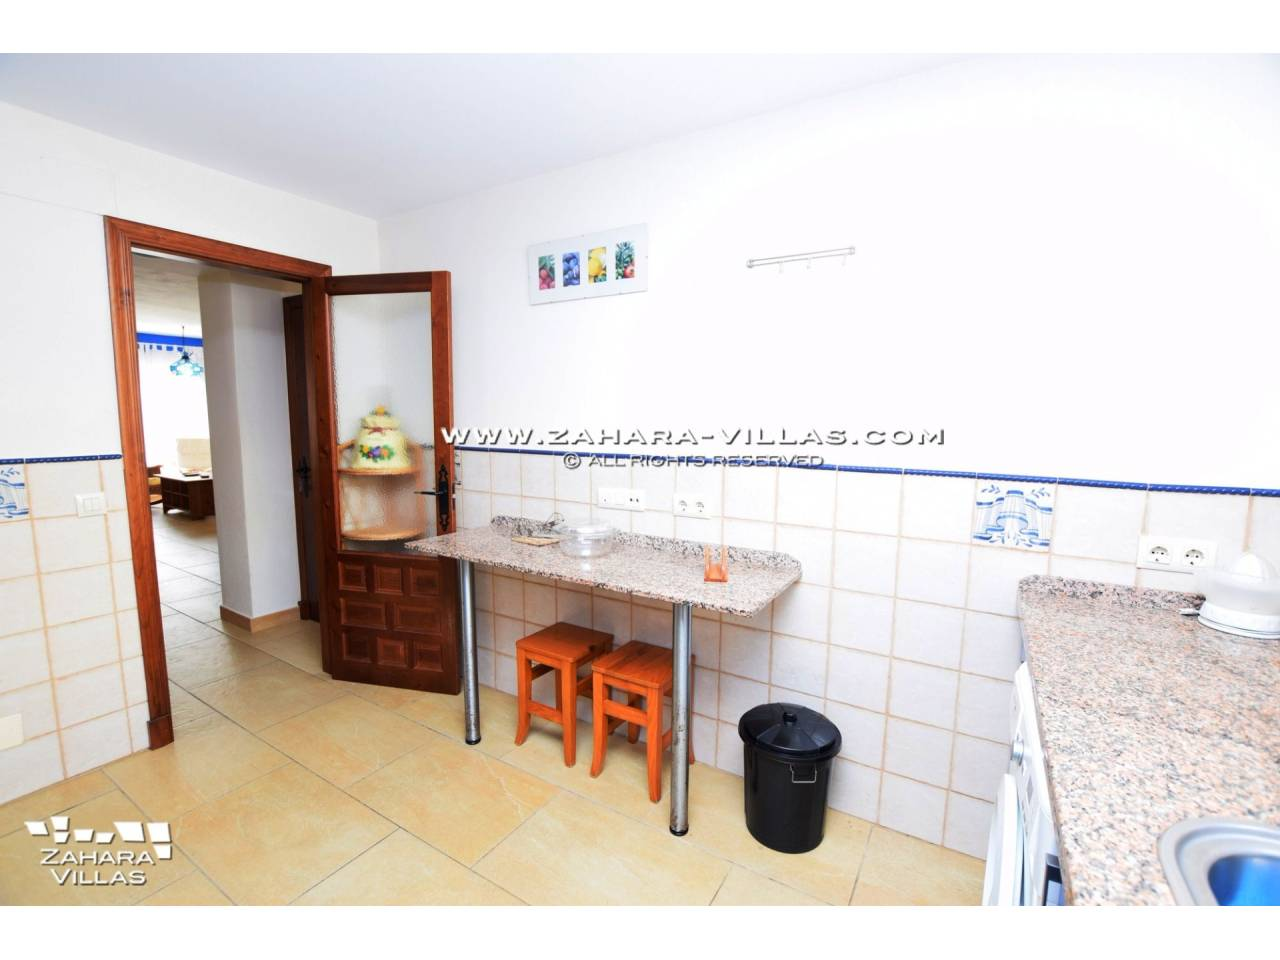 Imagen 11 de Semi-detached house for sale en Zahara de los Atunes